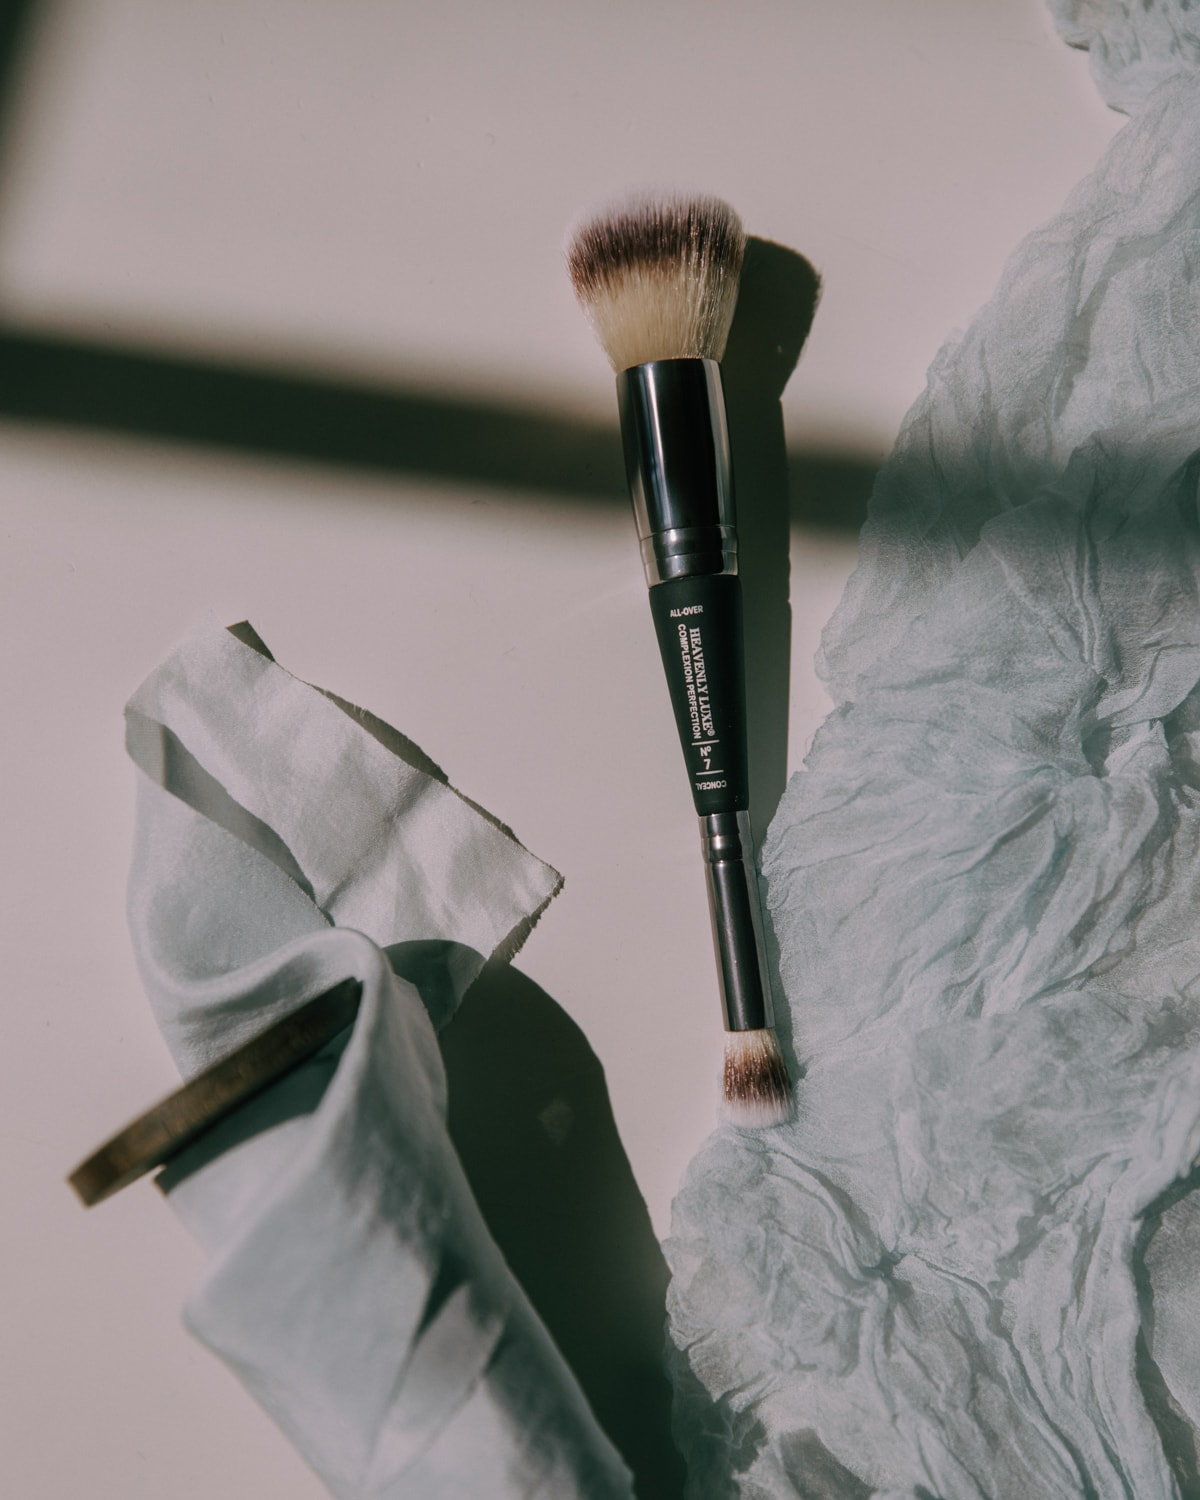 heavenly luxe complexion brush #7 for foundation